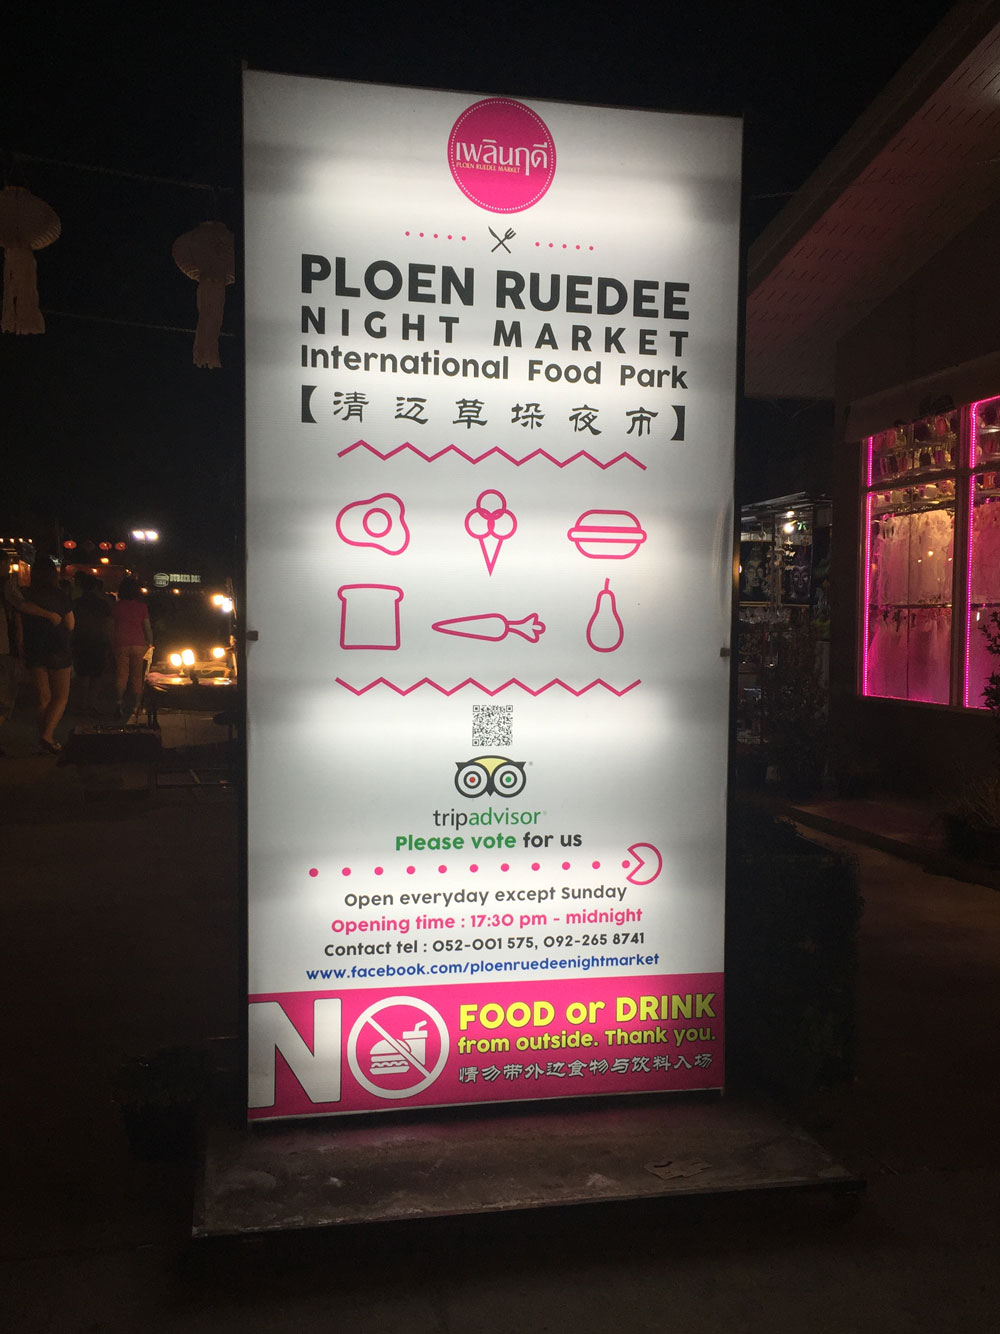 Look for this sign on the street to find the International Food Park